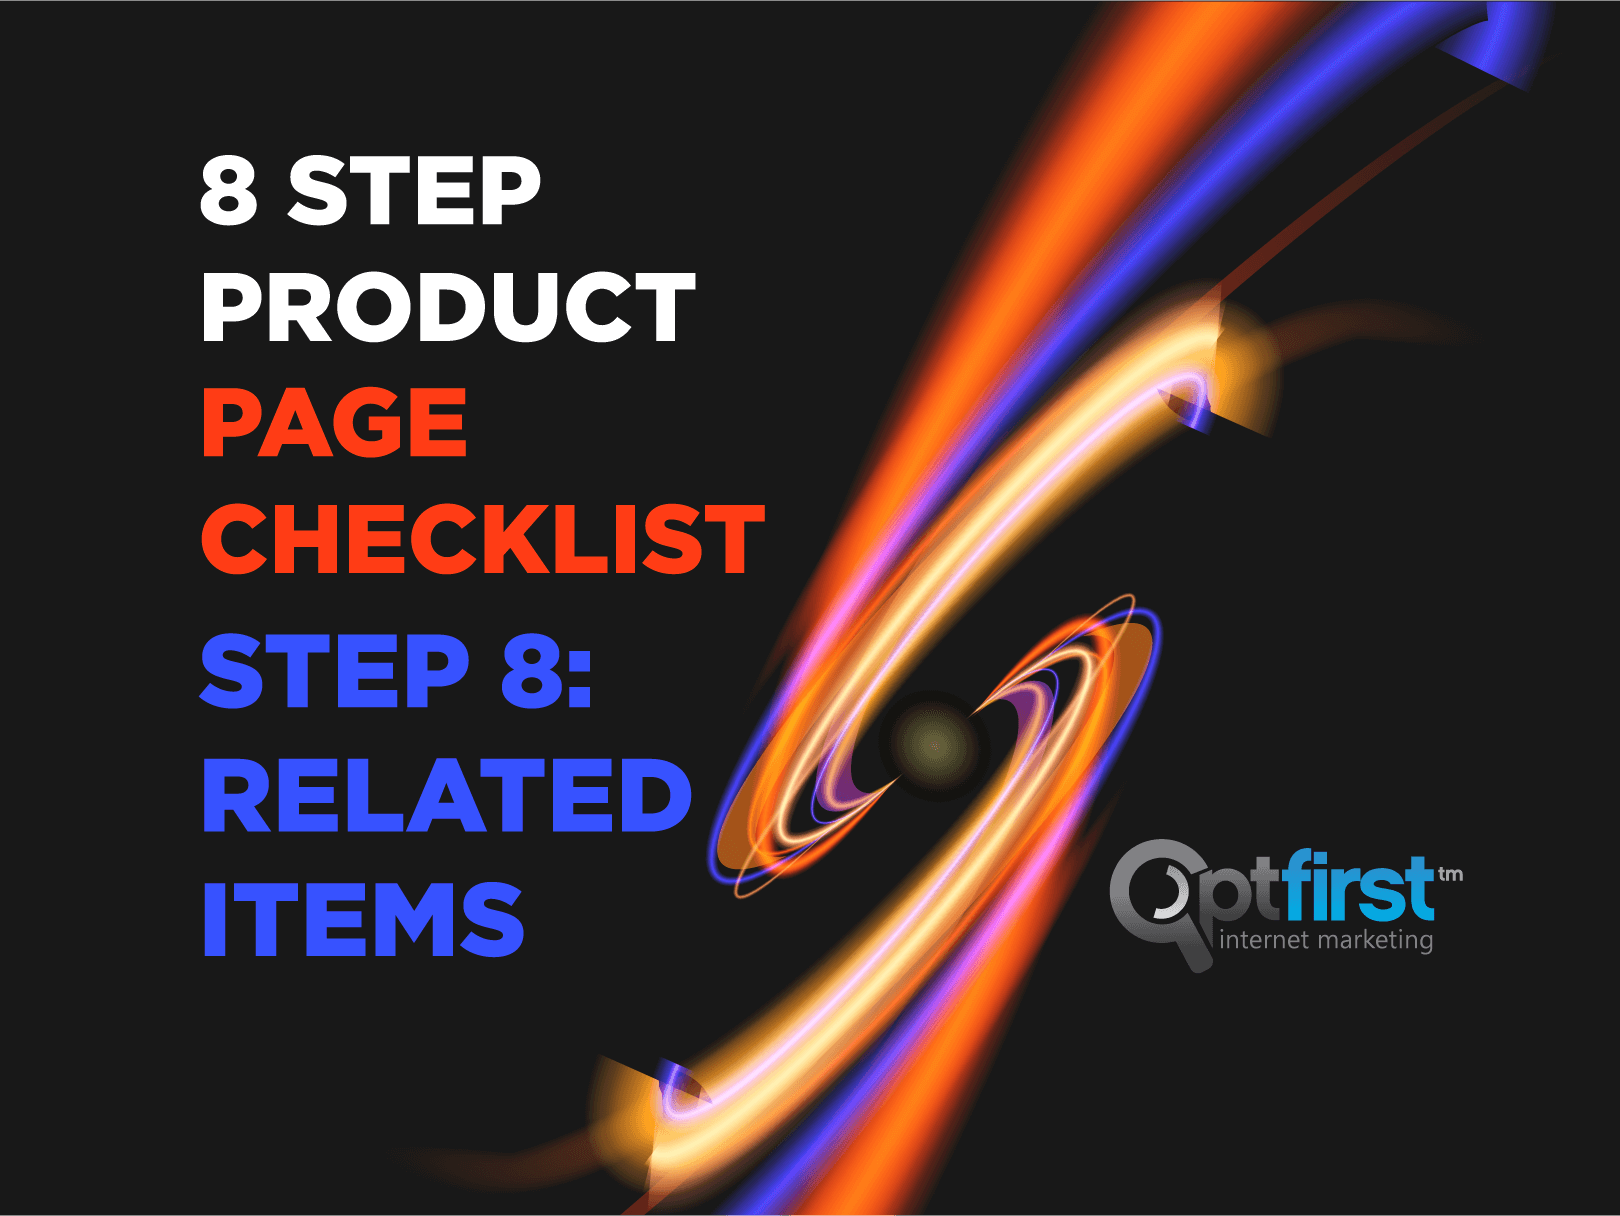 8 Step Product Page Checklist – Step 8: Related Items